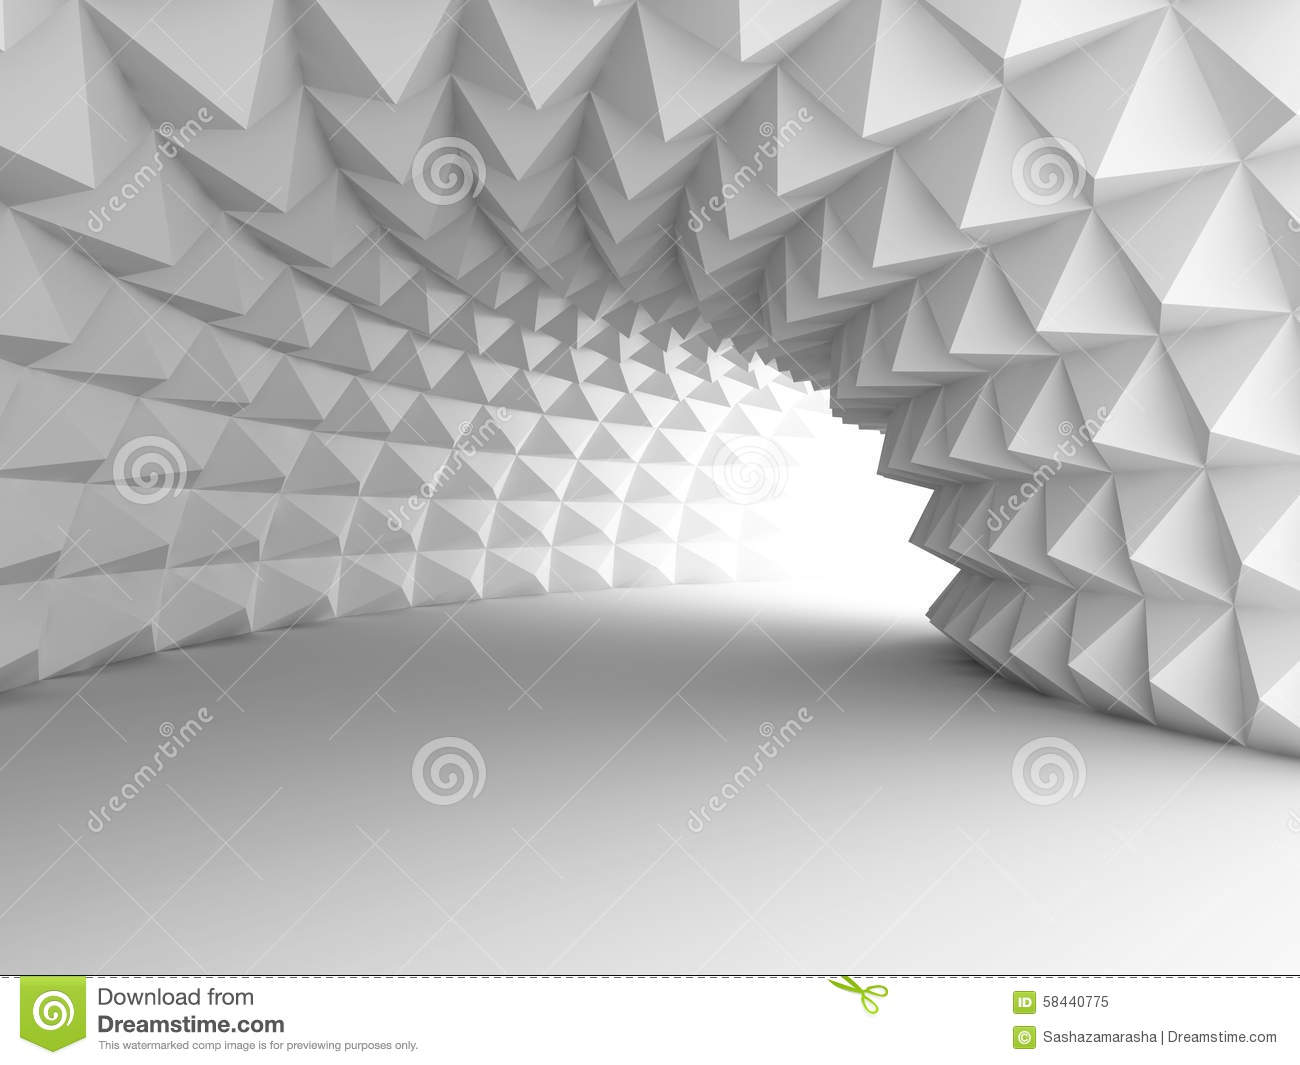 Wallpaper Illusion 3d Abstract Architecture Tunnel With Light Background Stock